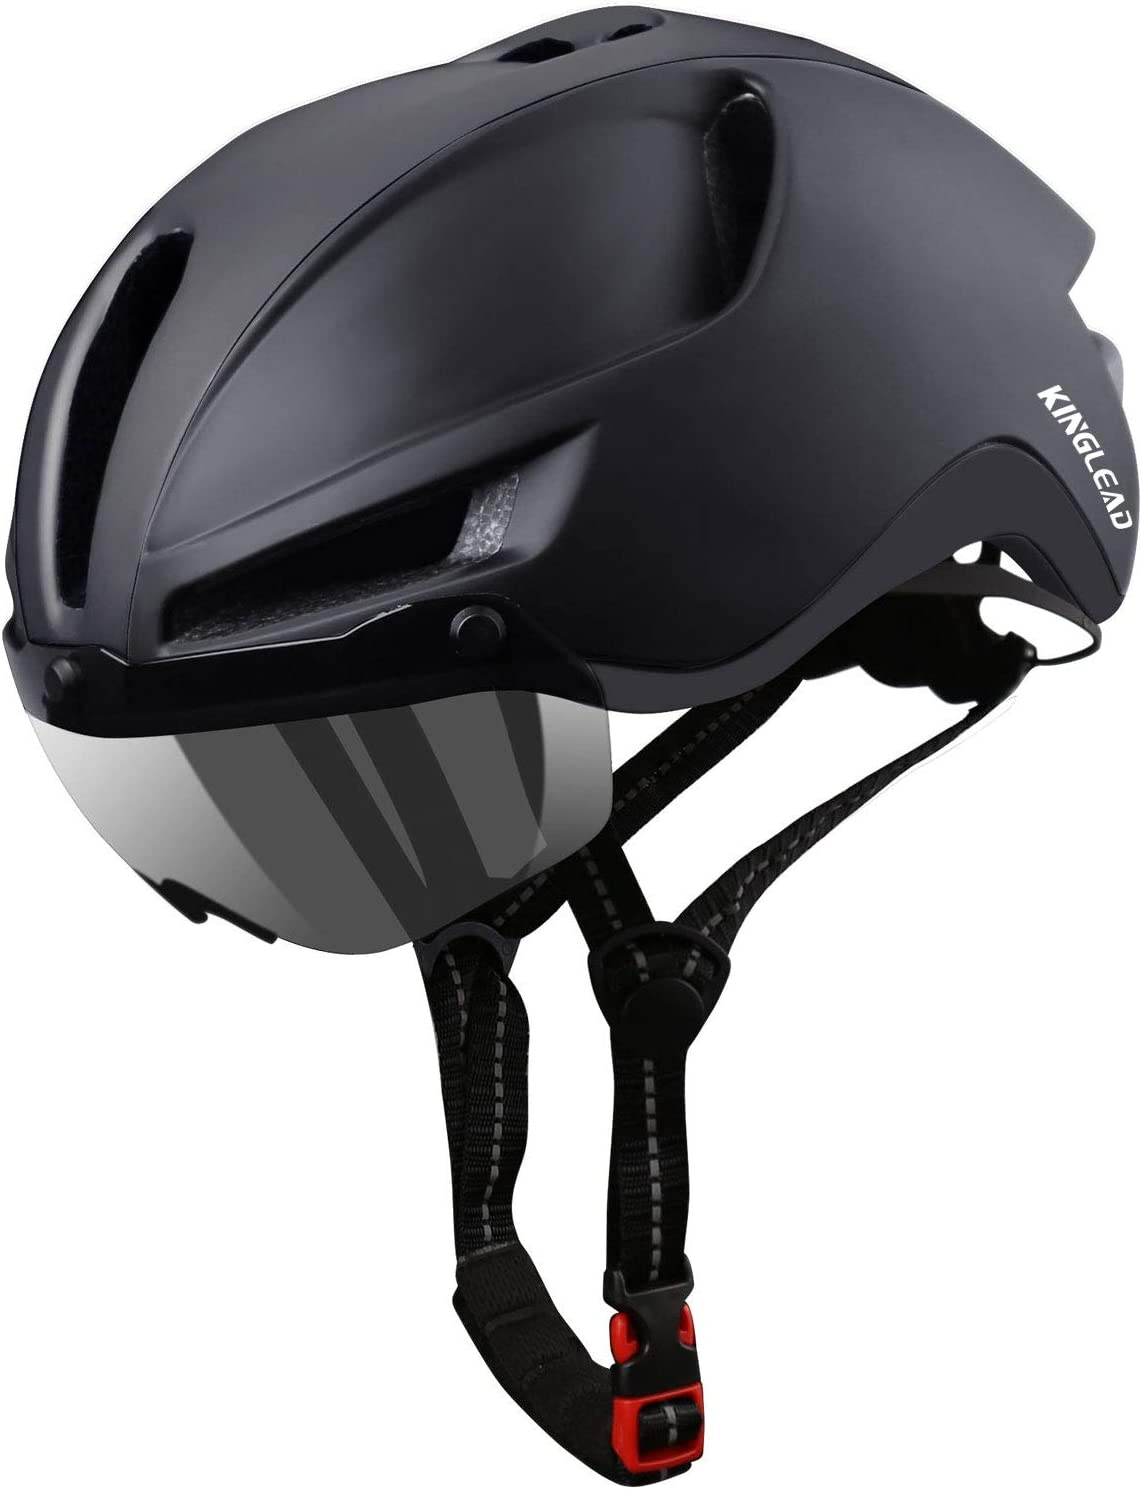 KINGLEAD Adult Bike Helmet Max 54% OFF USB Chargi with All stores are sold Mountain